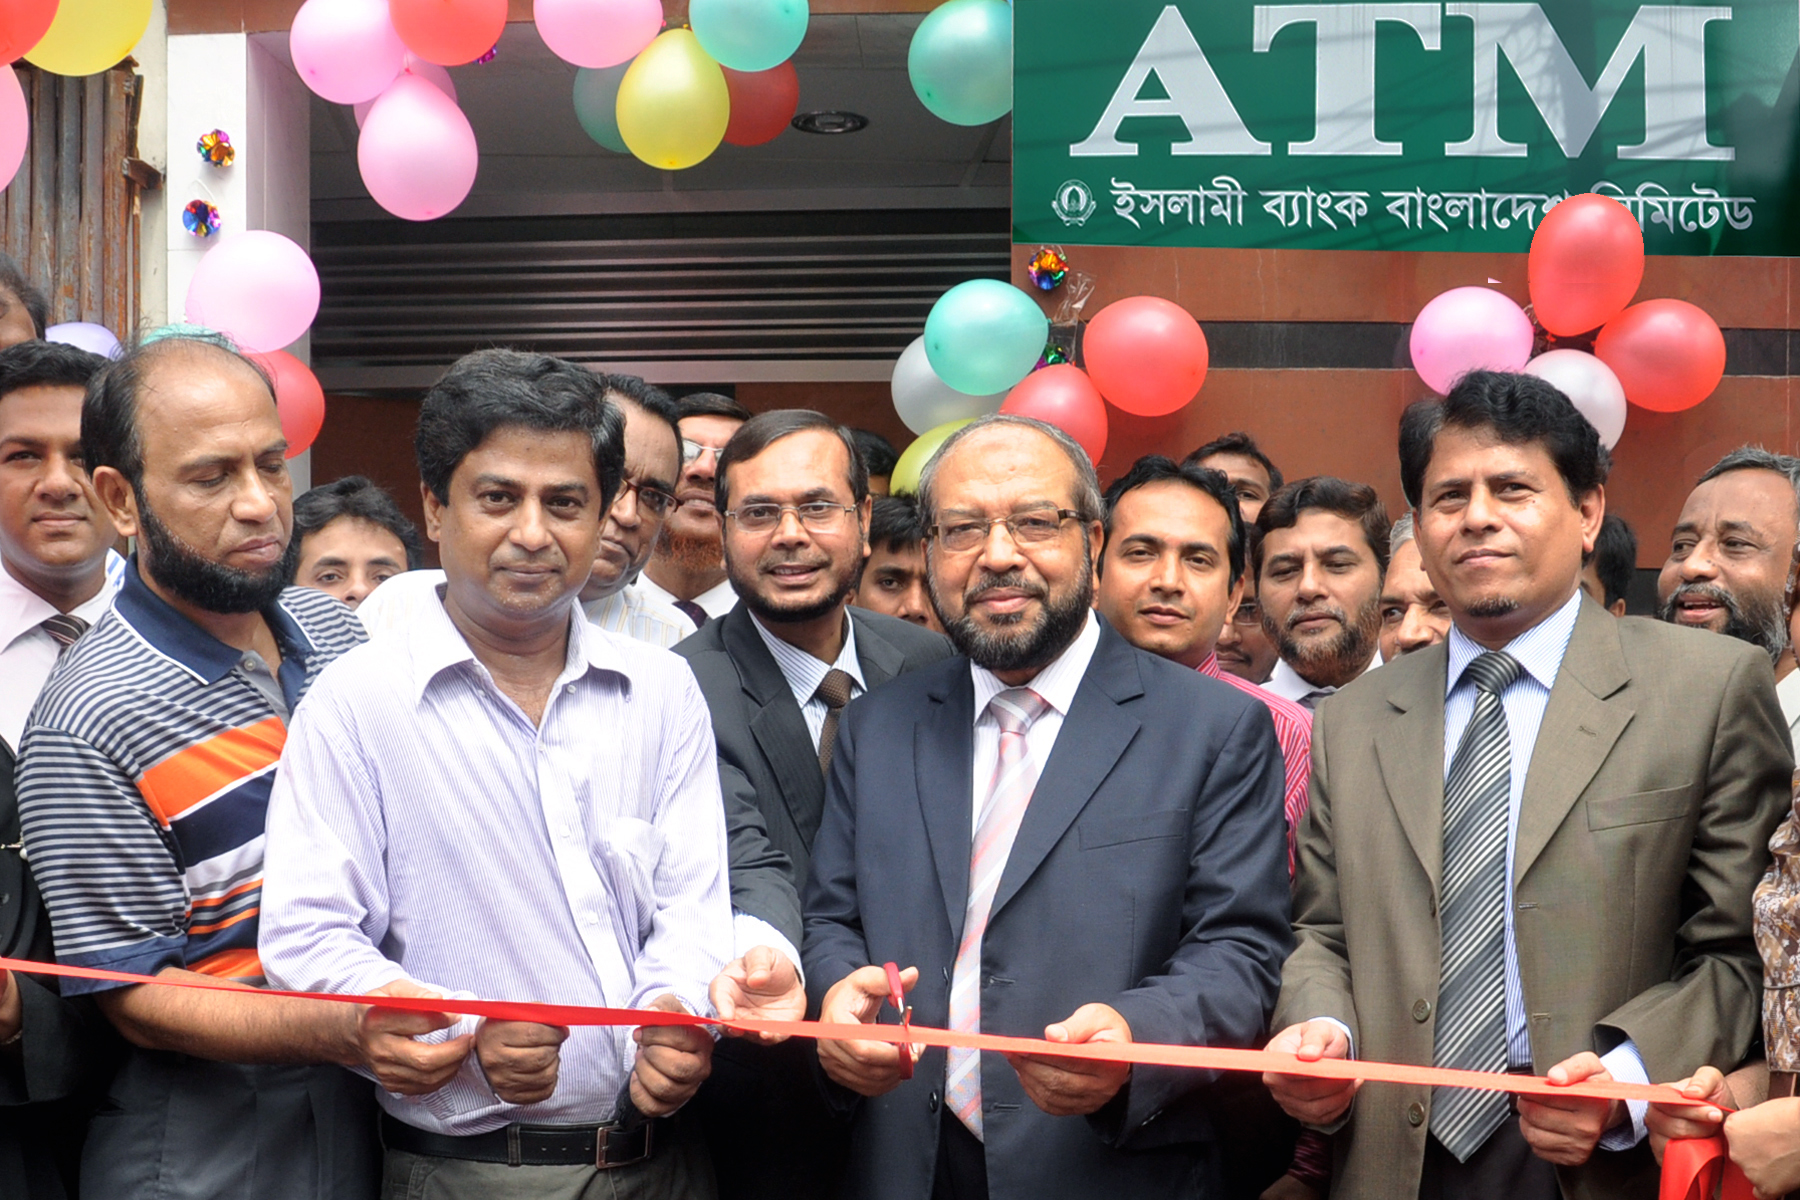 green banking in islami bank bangladesh Uttara bank limited is one of the largest private banks in bangladesh, the bank  has more than  green banking uttara bank limited has a wide range of green  financing products under bangladesh bank's green bank refinance scheme.